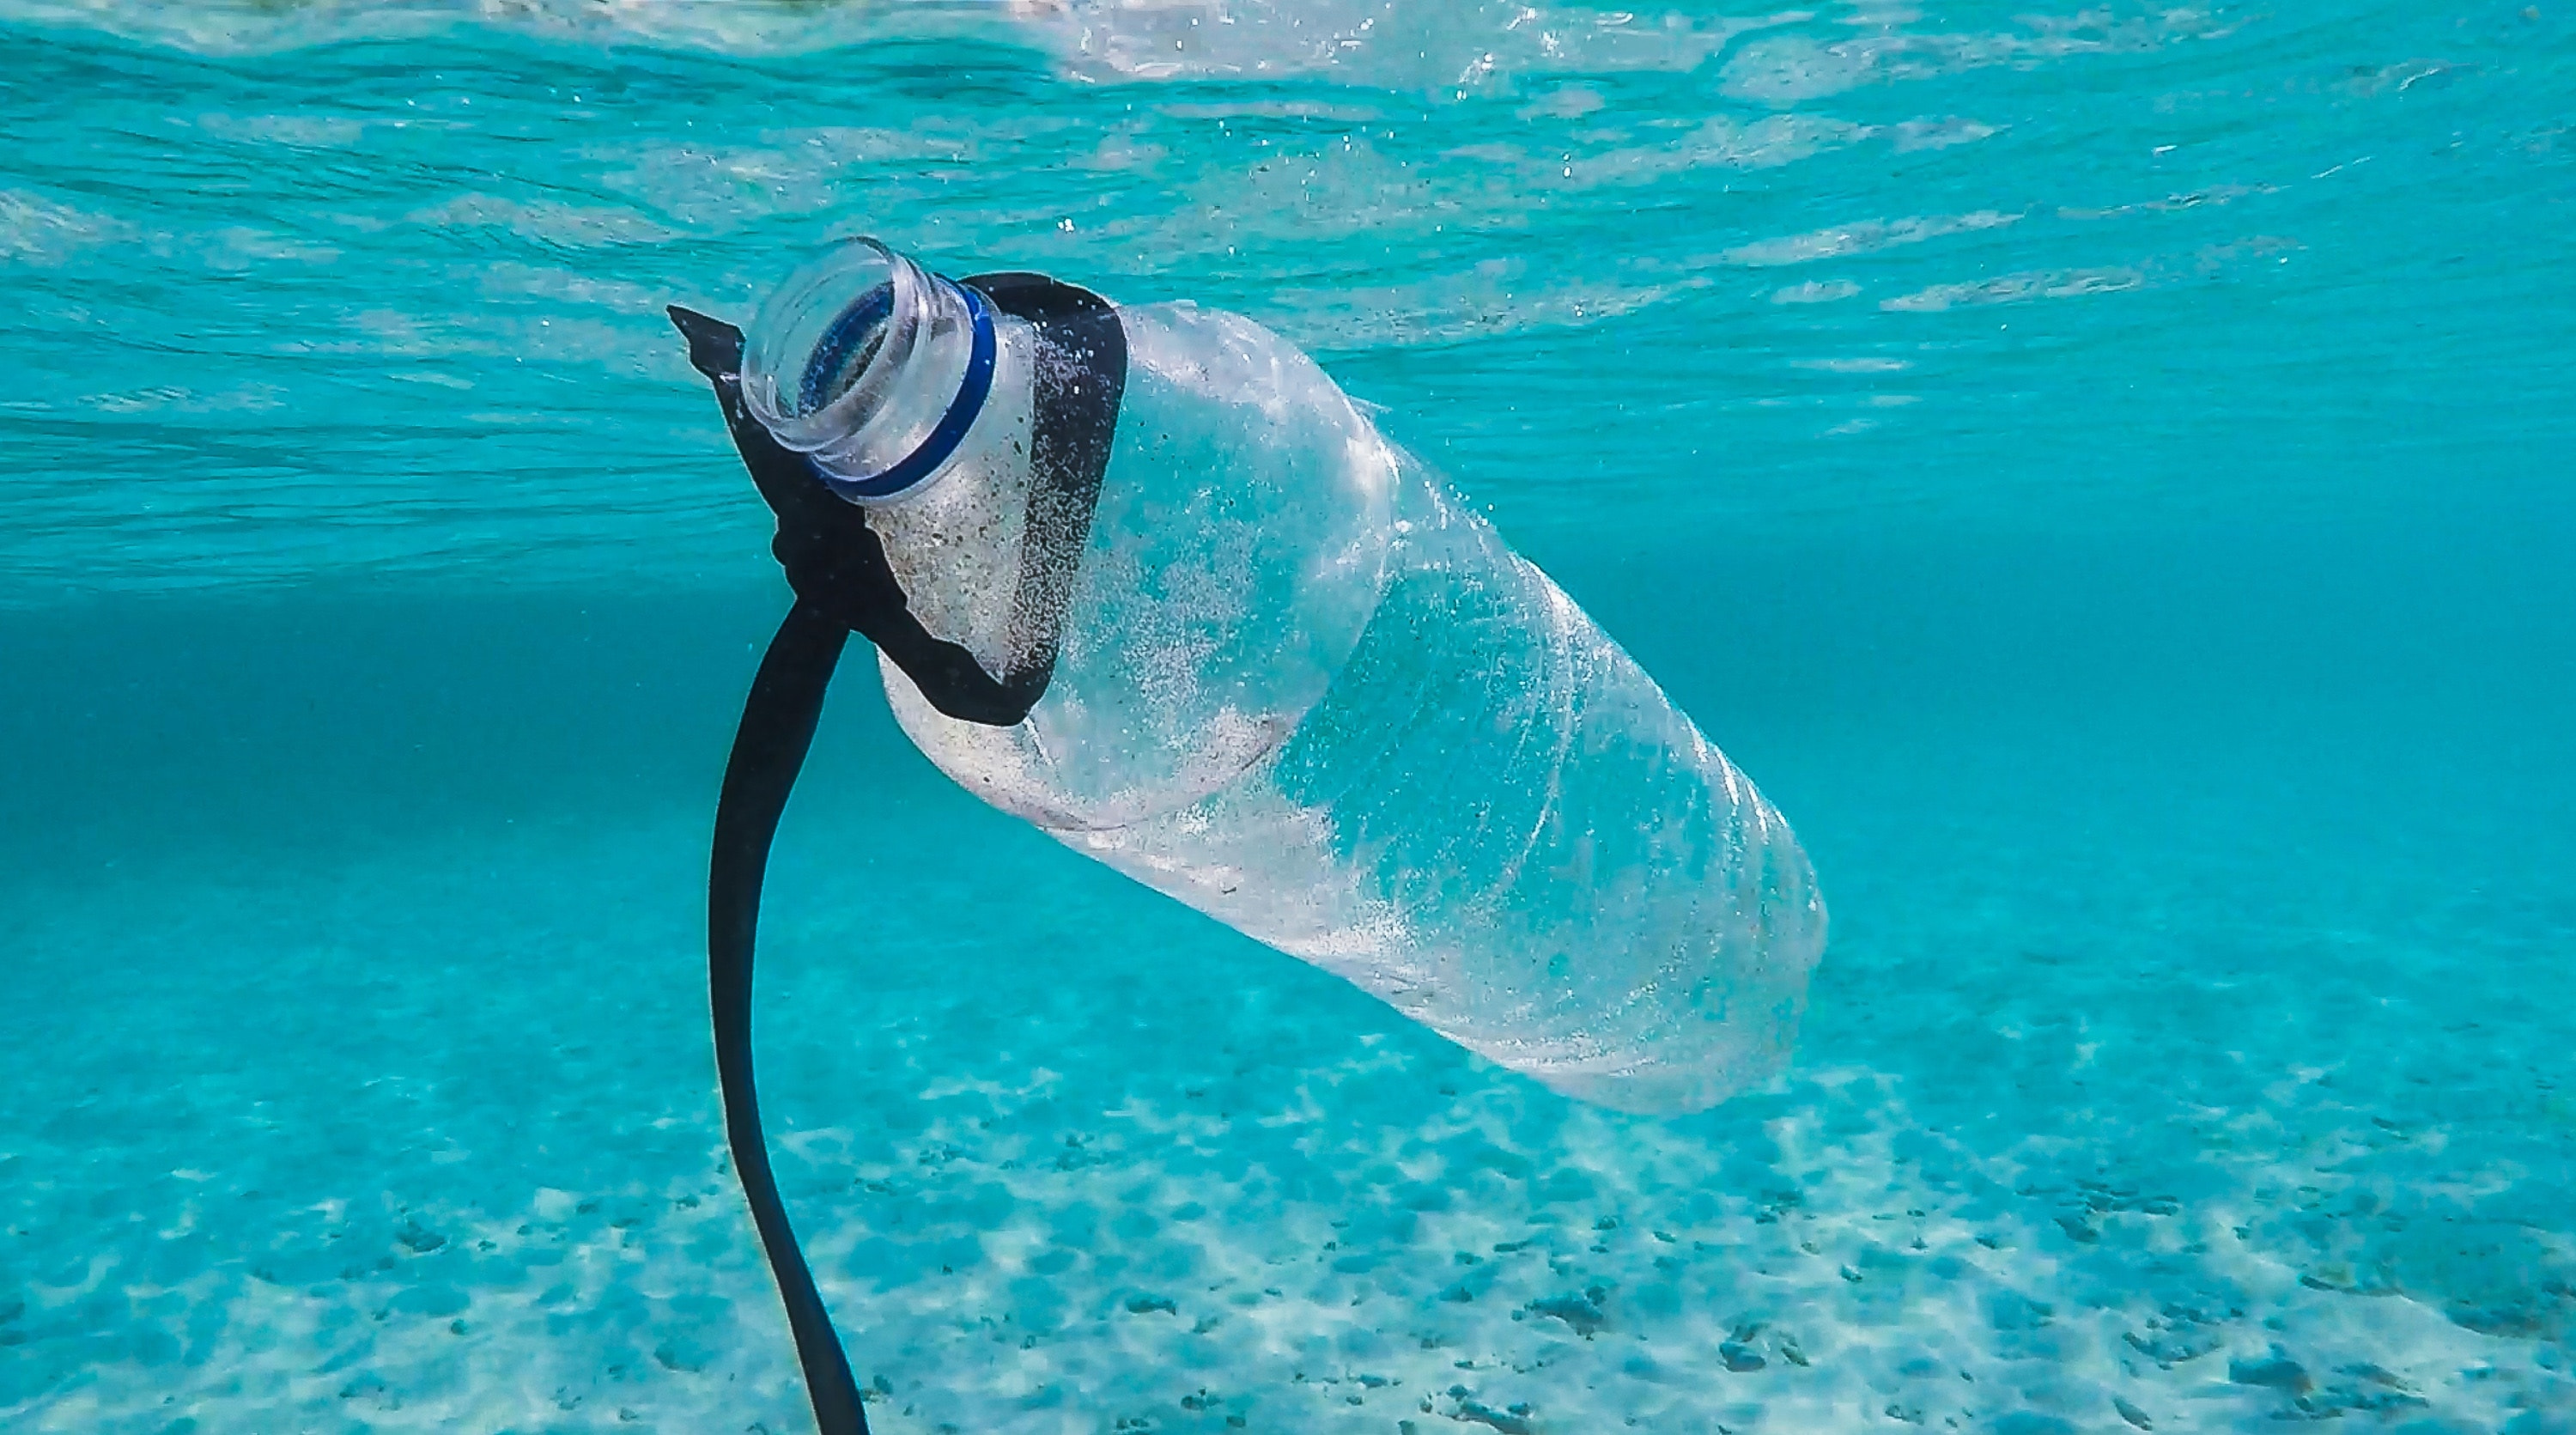 6 great tips to reduce your plastic waste while traveling